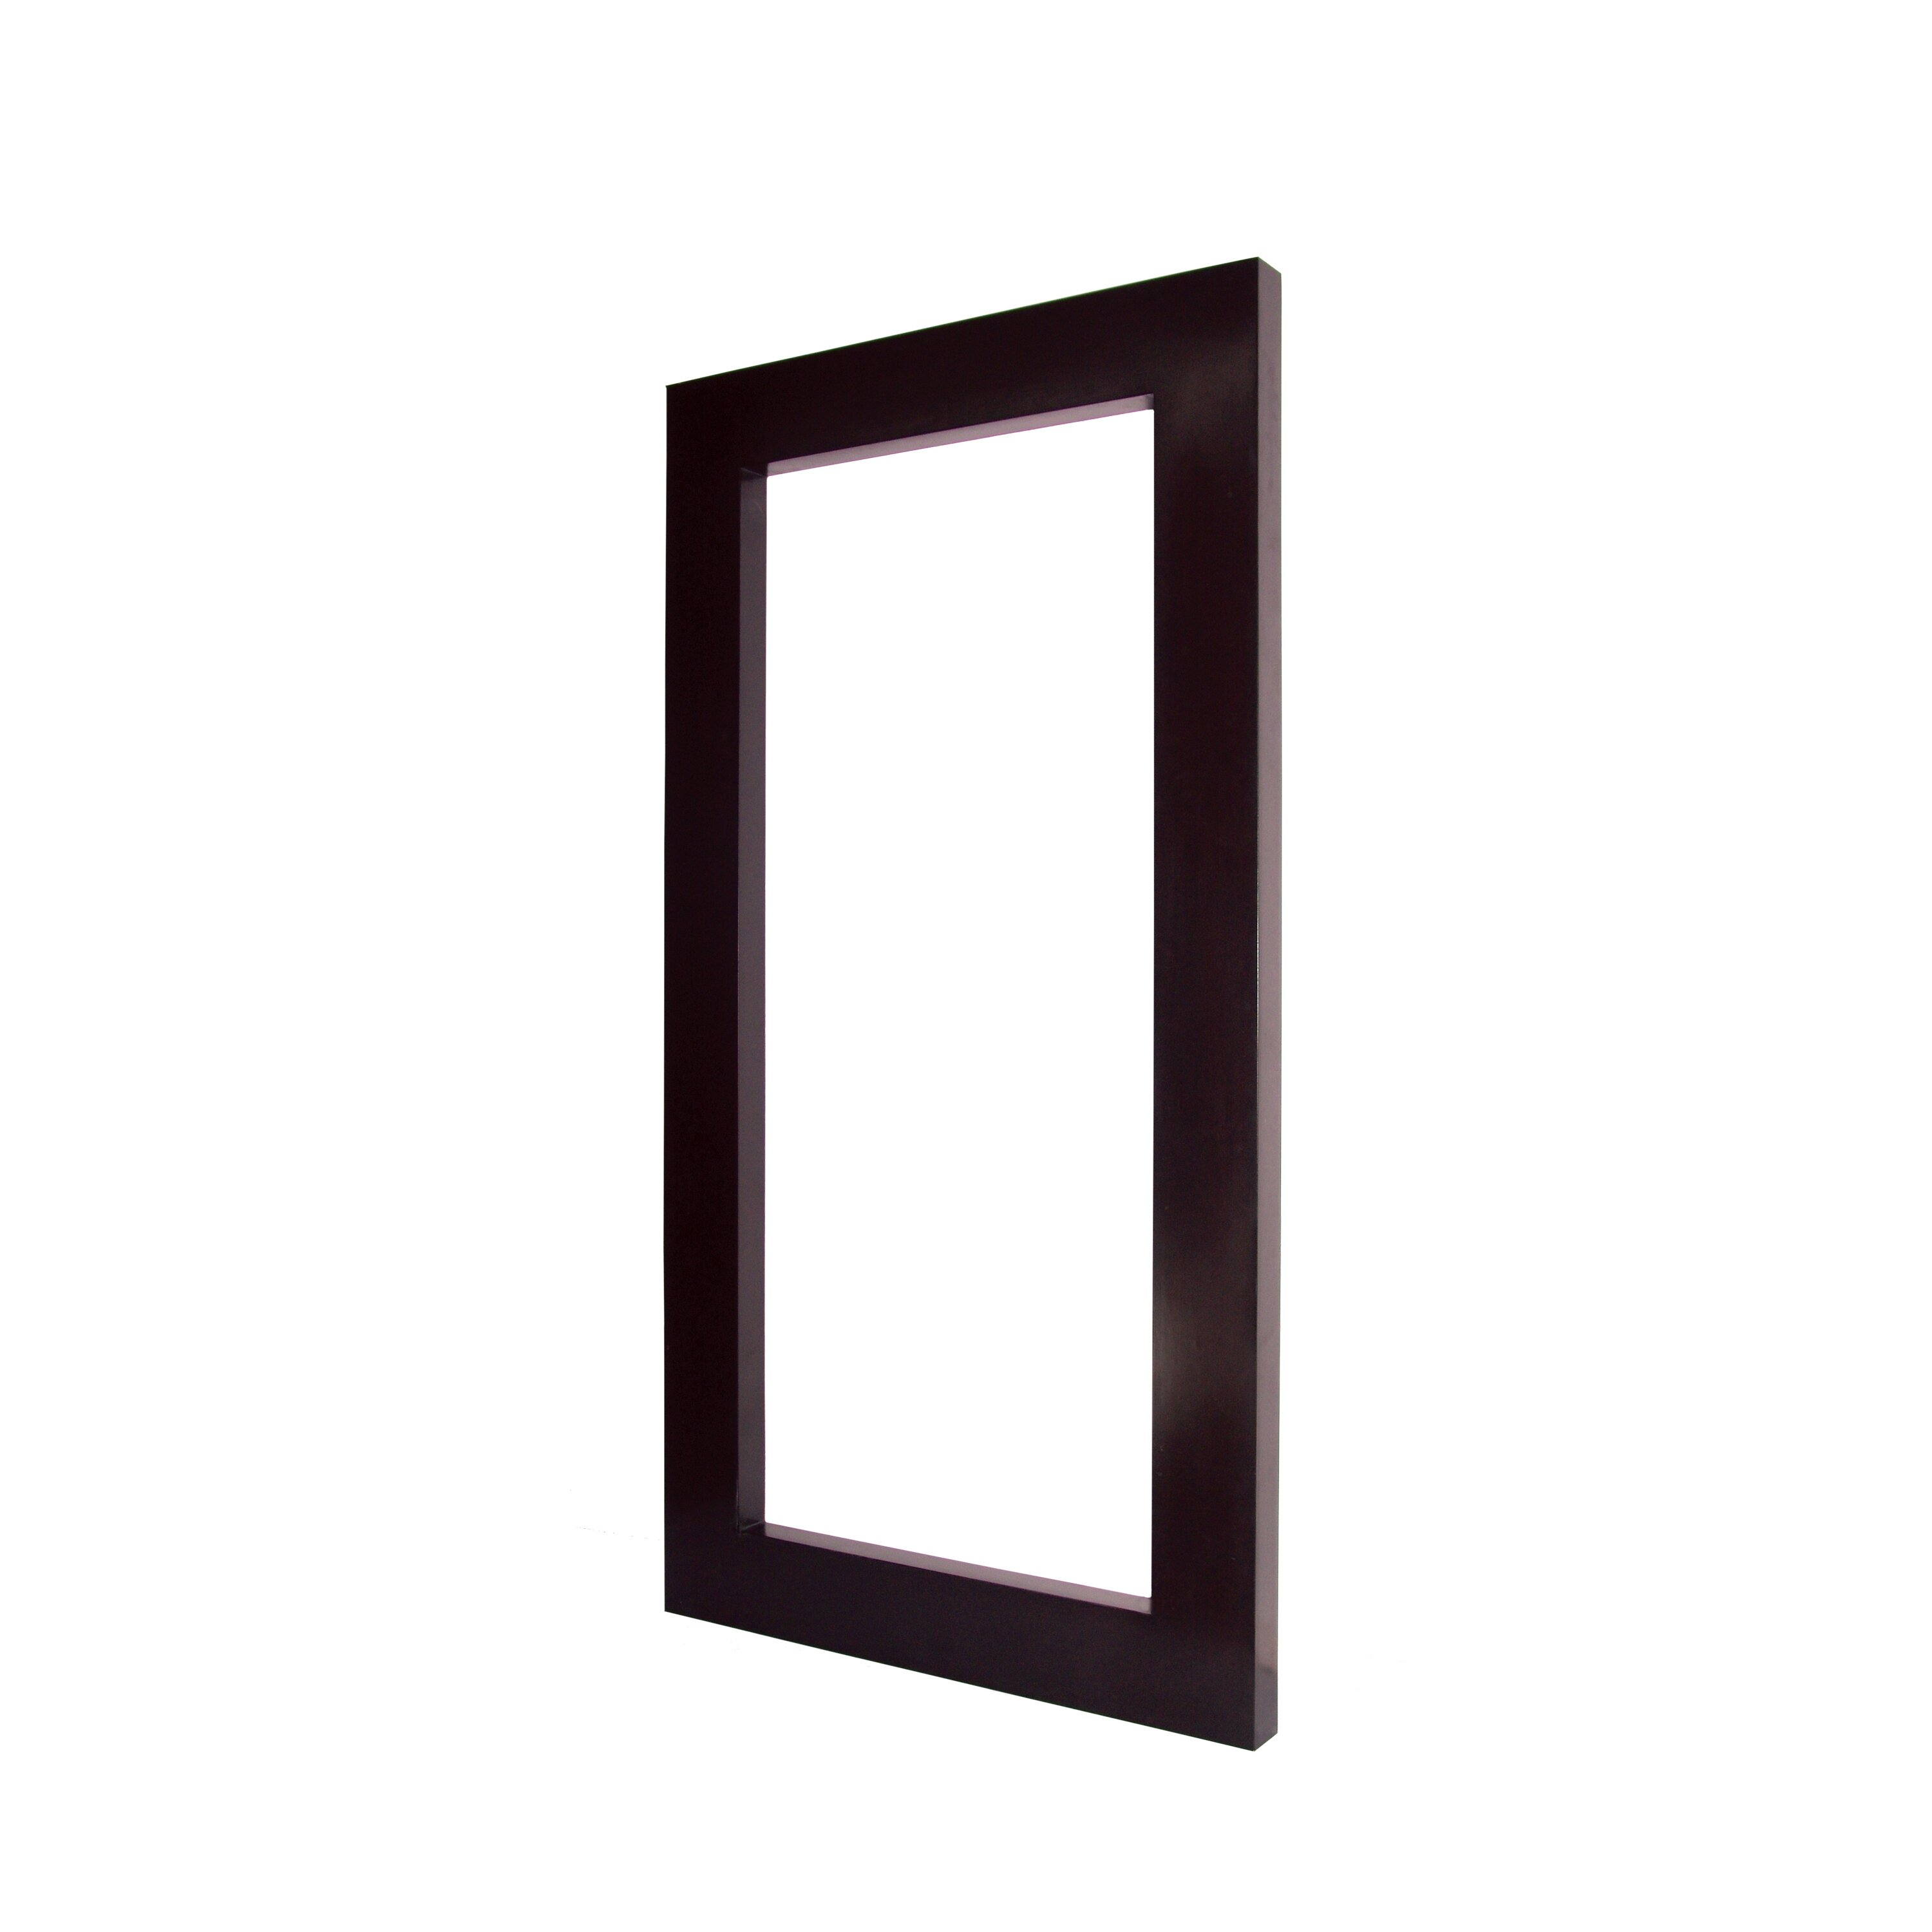 Majestic mirror large rectangular dark brown contemporary for Contemporary mirrors